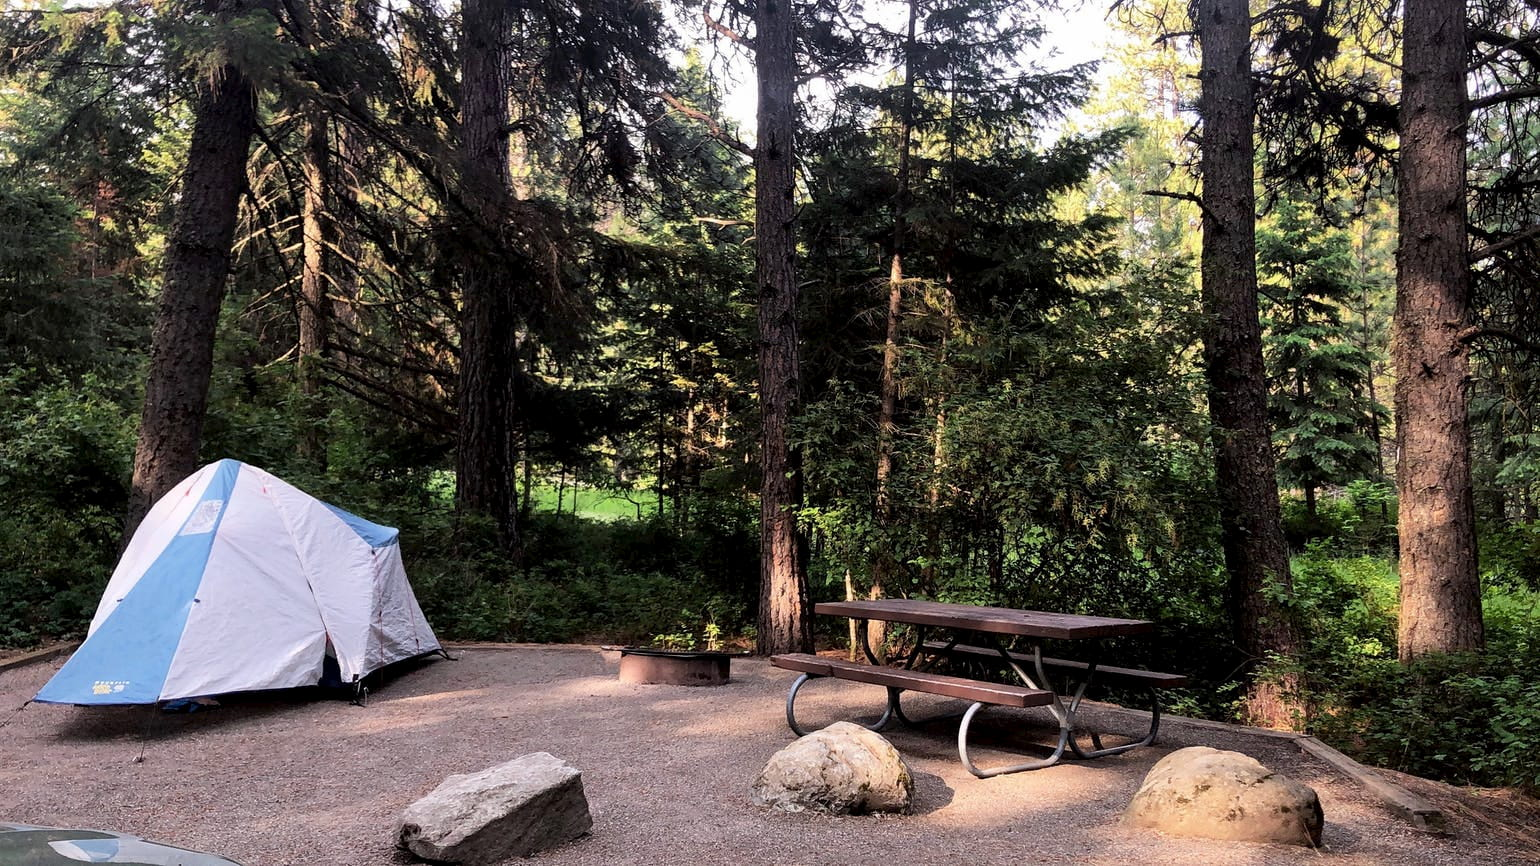 Campsite with picnic table and tent set up.